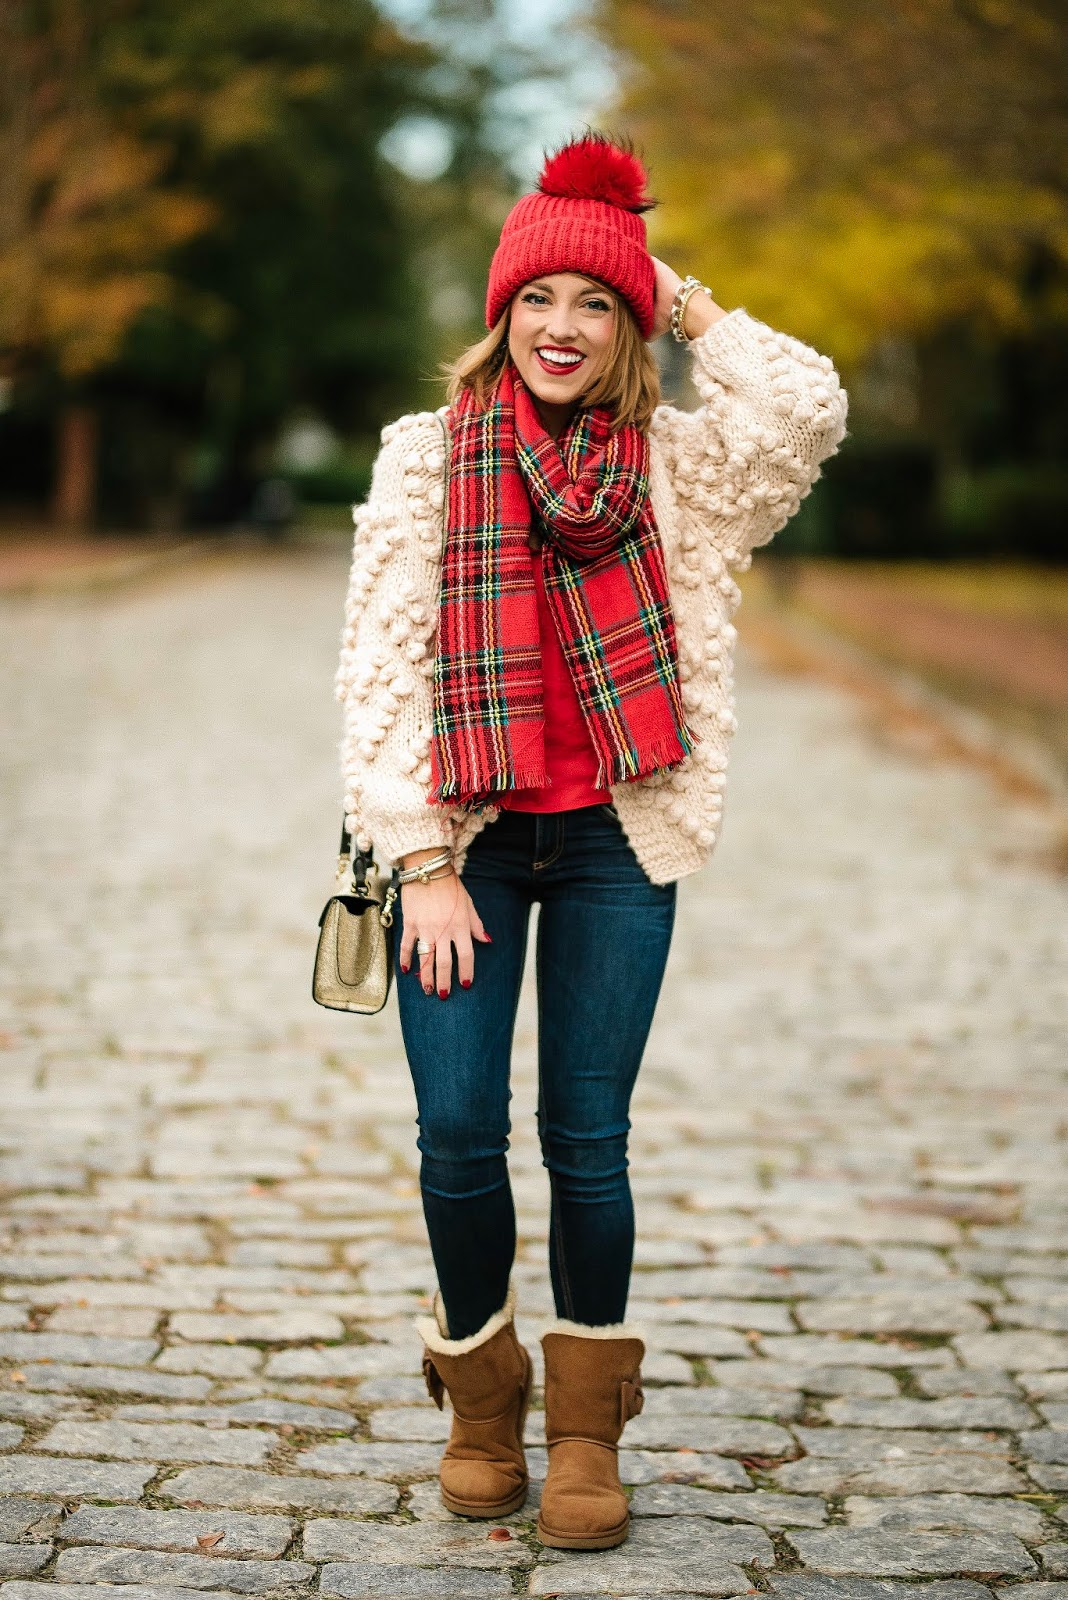 Pom Pom Heart Cardigan, Plaid Scarf & Uggs (that are on sale!) - Something Delightful Blog